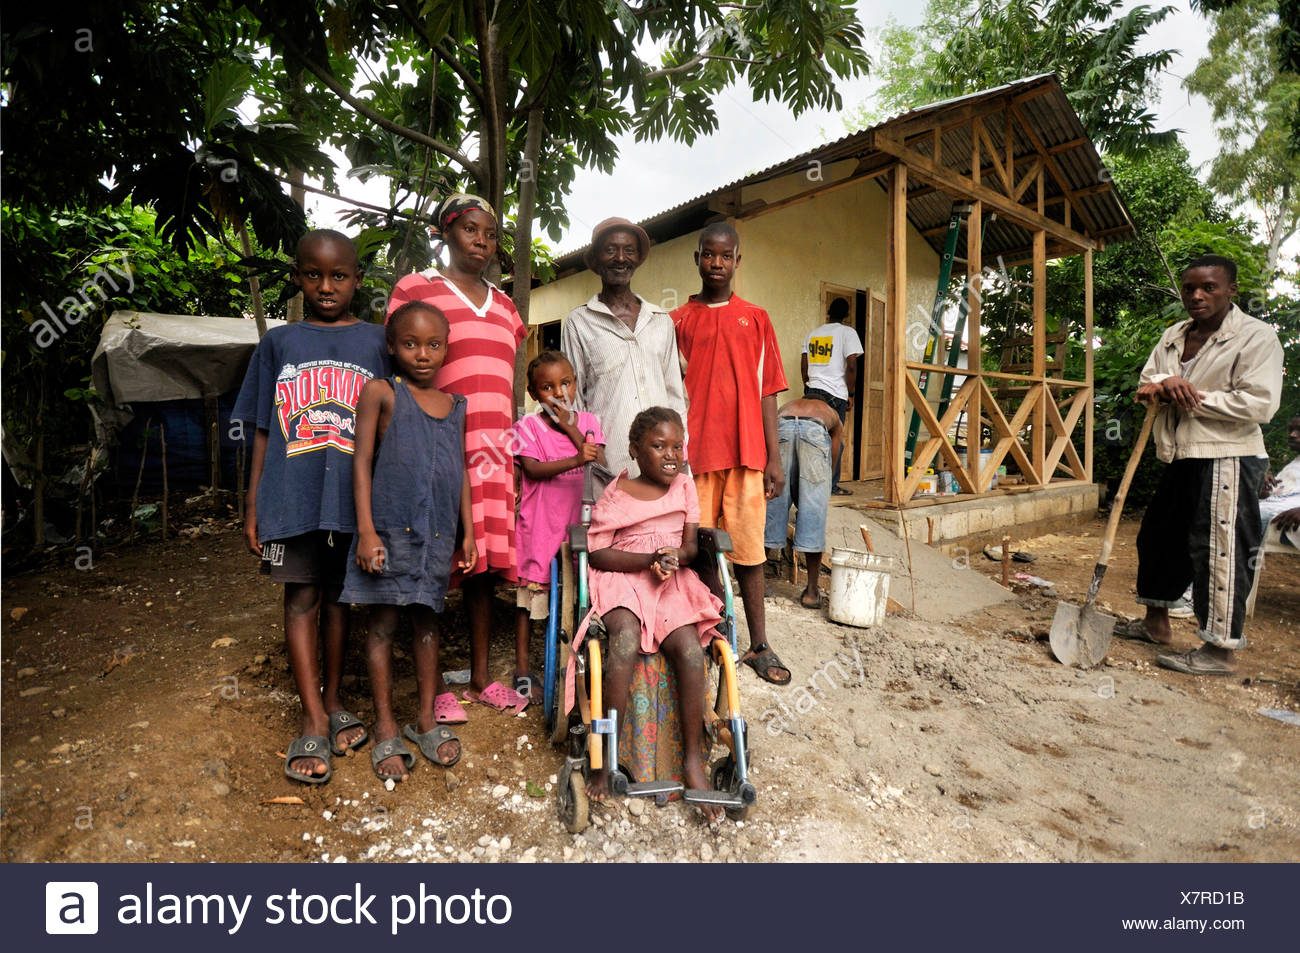 Construction of an earthquake-proof house with disabled ramp suitable for wheelchair use, prefabricated house built by a charity - Stock Image